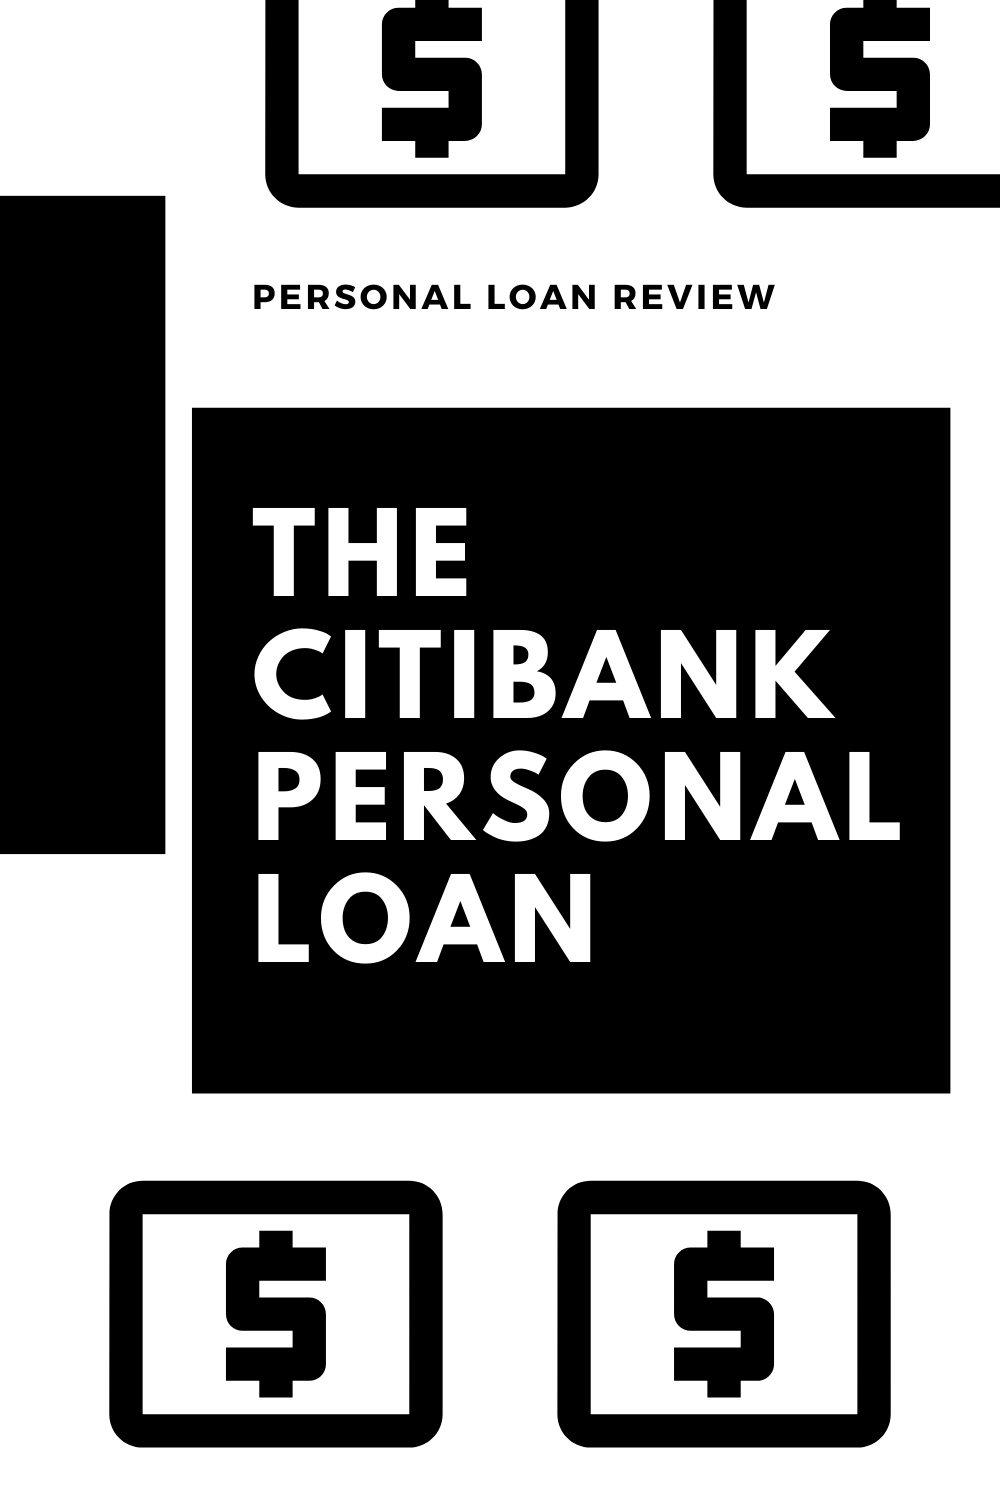 Citibank Personal Loan Review In 2020 Personal Loans Loan Person